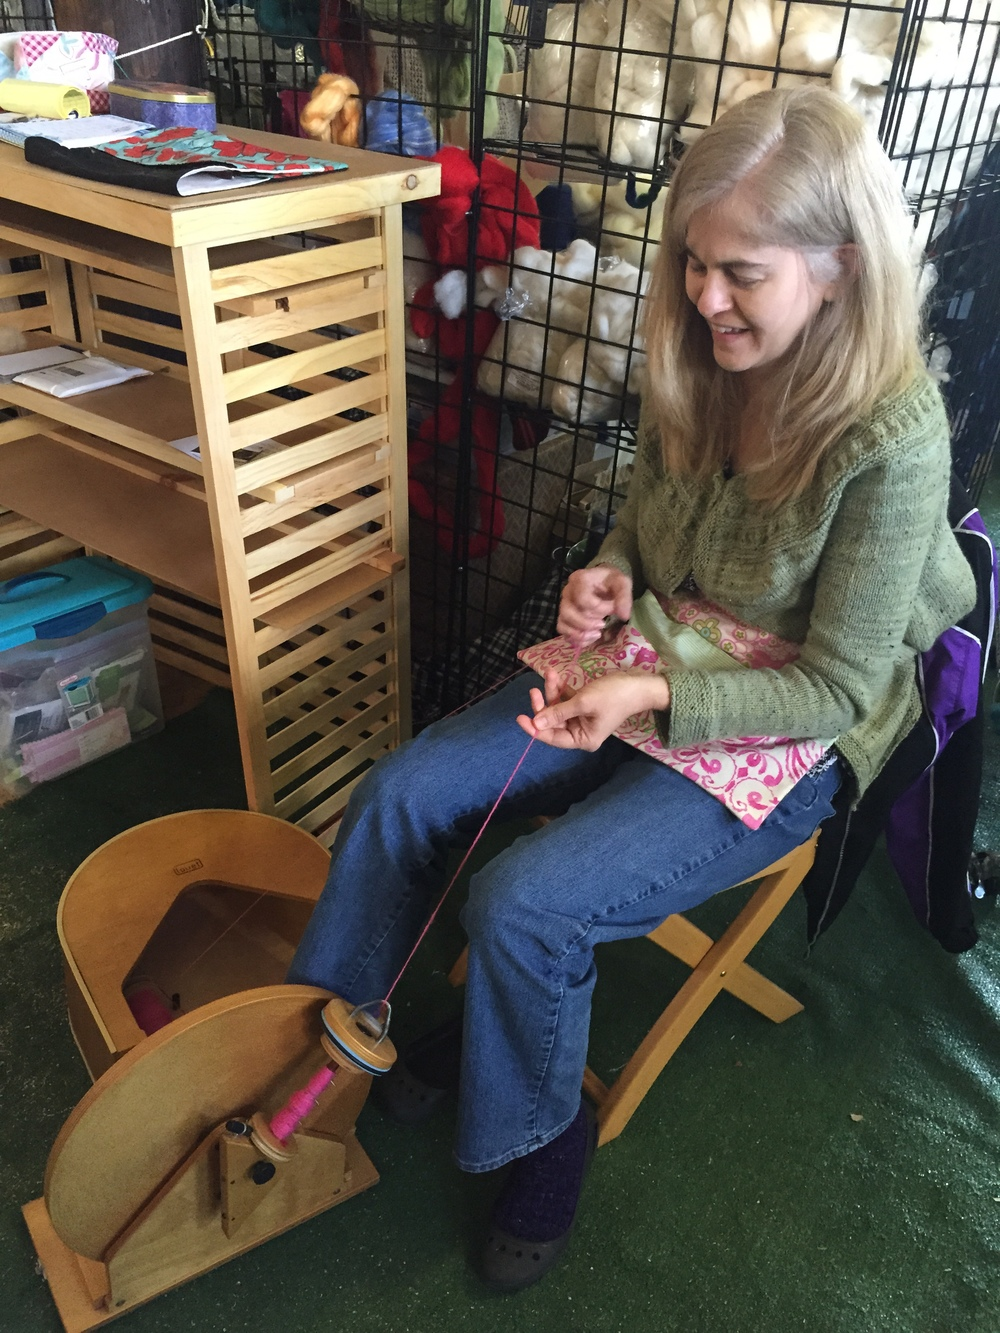 Kay from Bede Sisters passing a little time on her sweet Louet Hatbox spinning wheel.